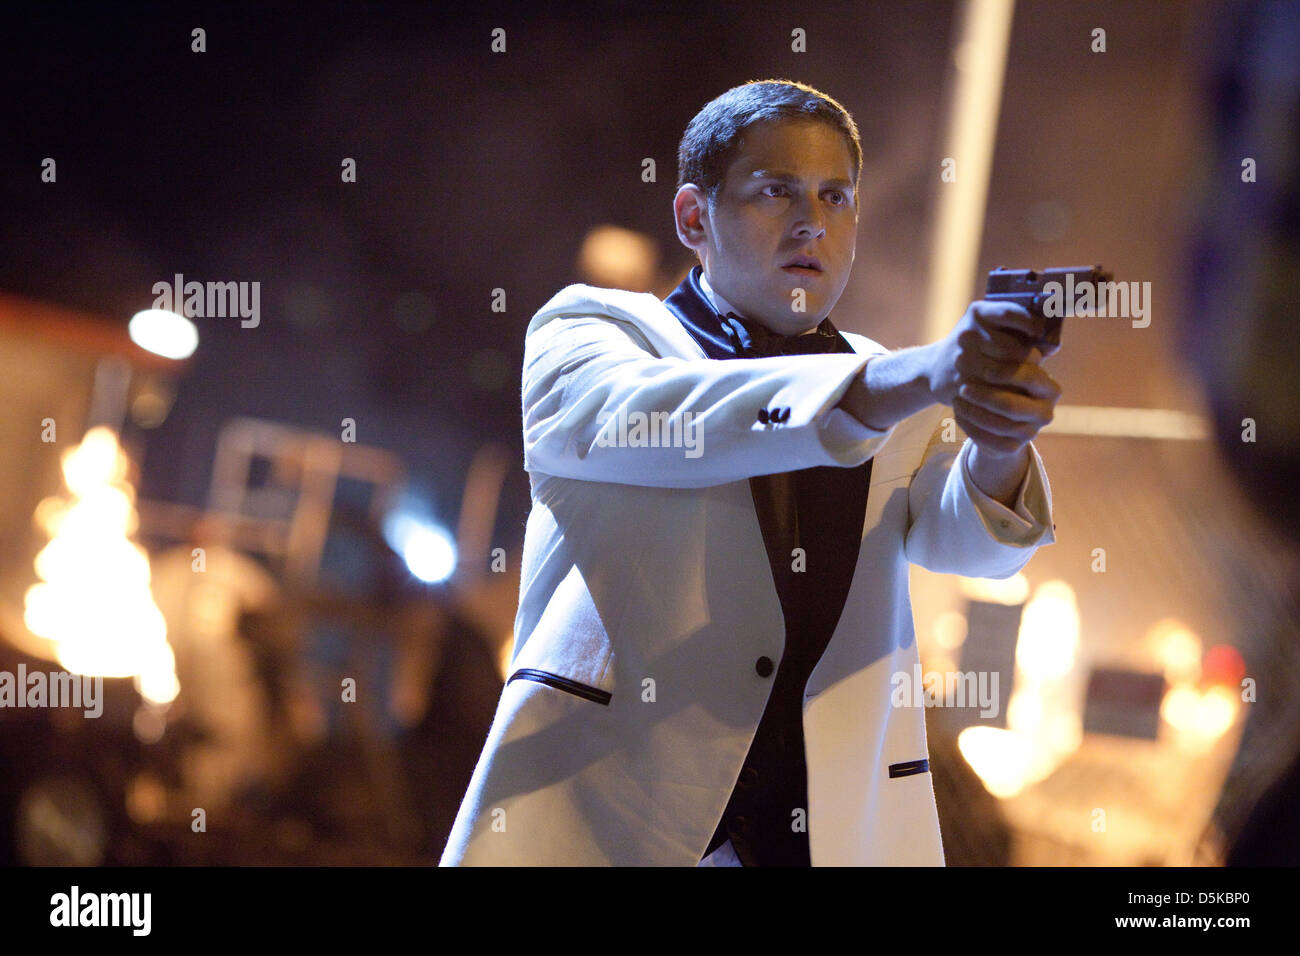 a78e5e37105 21 Jump Street Stock Photos   21 Jump Street Stock Images - Alamy